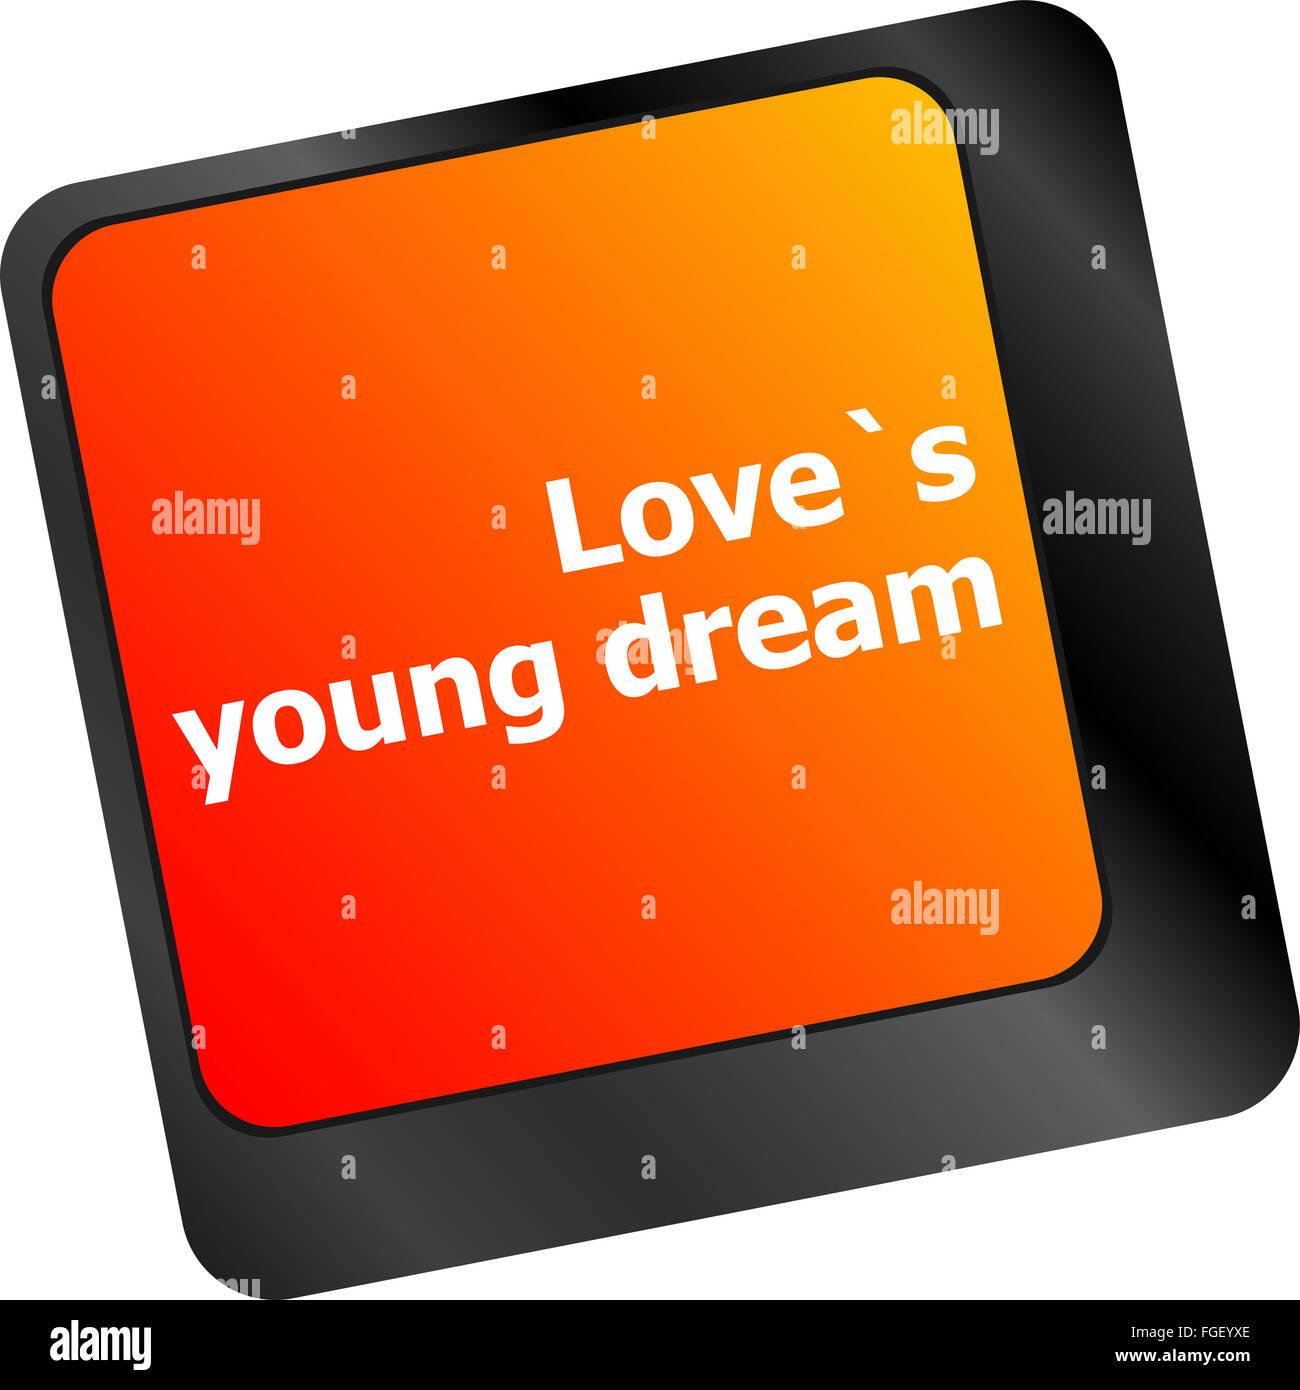 love s young dream on key or keyboard showing internet